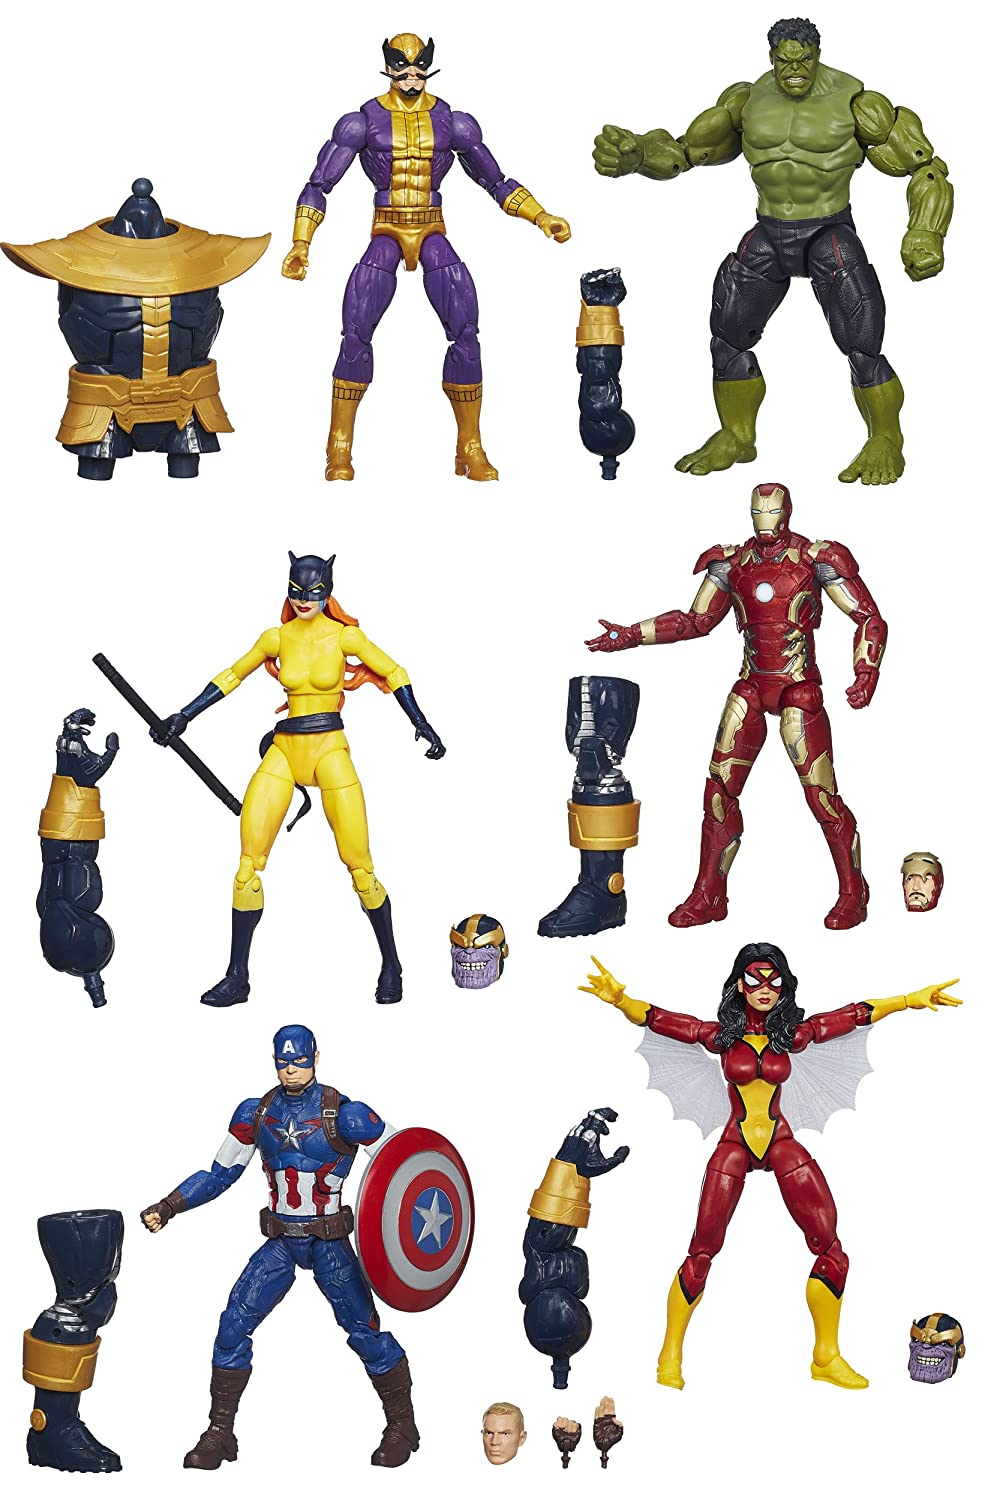 "DISNEY MARVEL Comics LEGENDS Actionfiguren Reihe ""Infinite"" – komplette Wave 2 – u.a. mit HULK, THANOS, CAPTAIN AMERICA und andere jetzt bestellen"